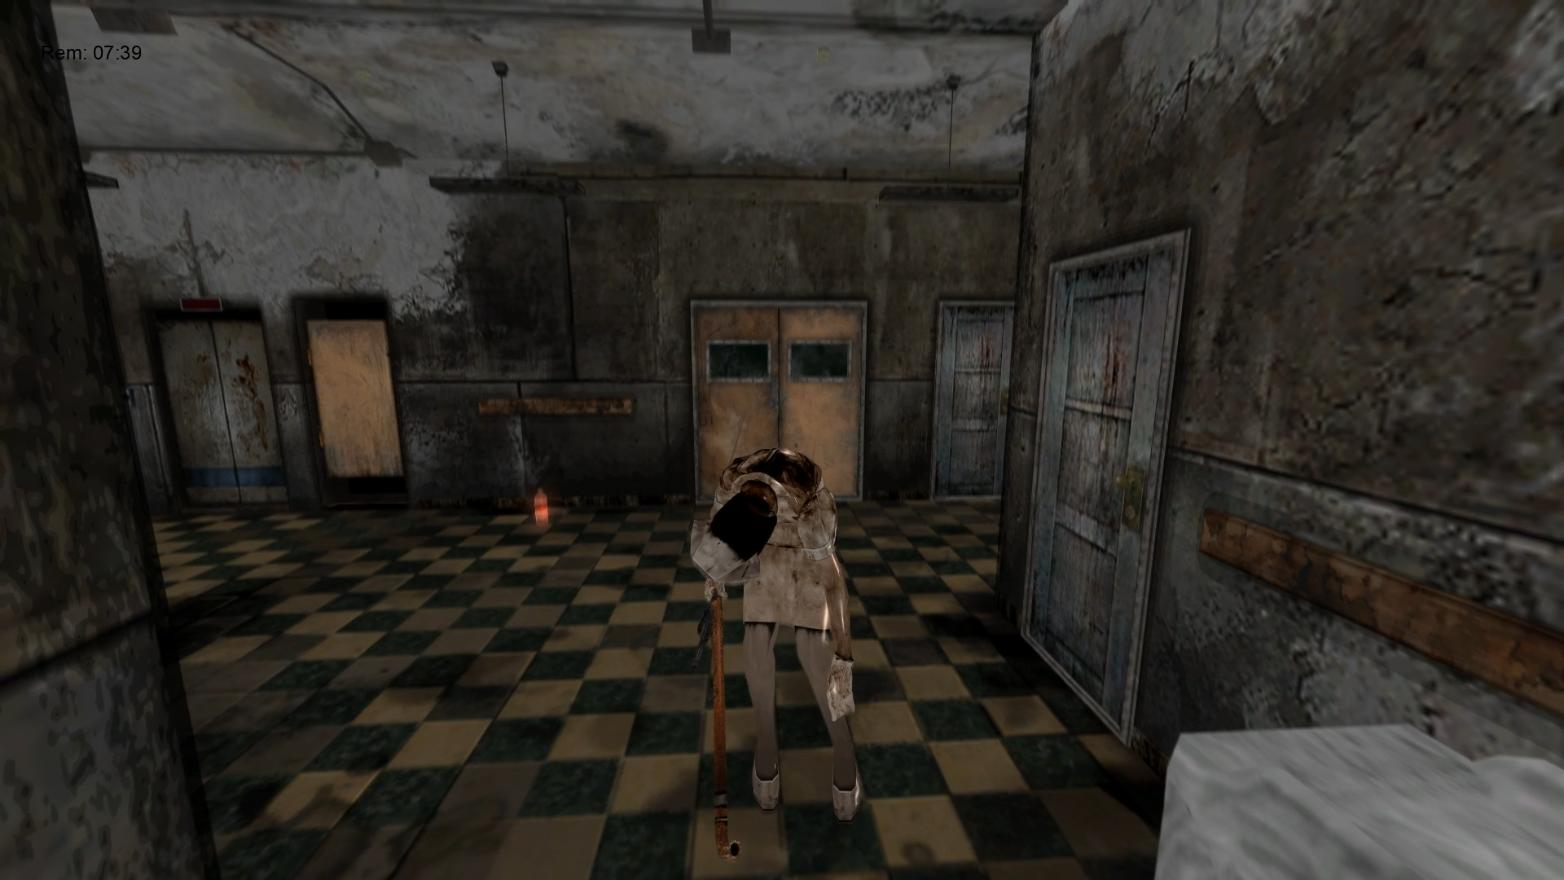 silent hill 2 5 fangame by s5zone